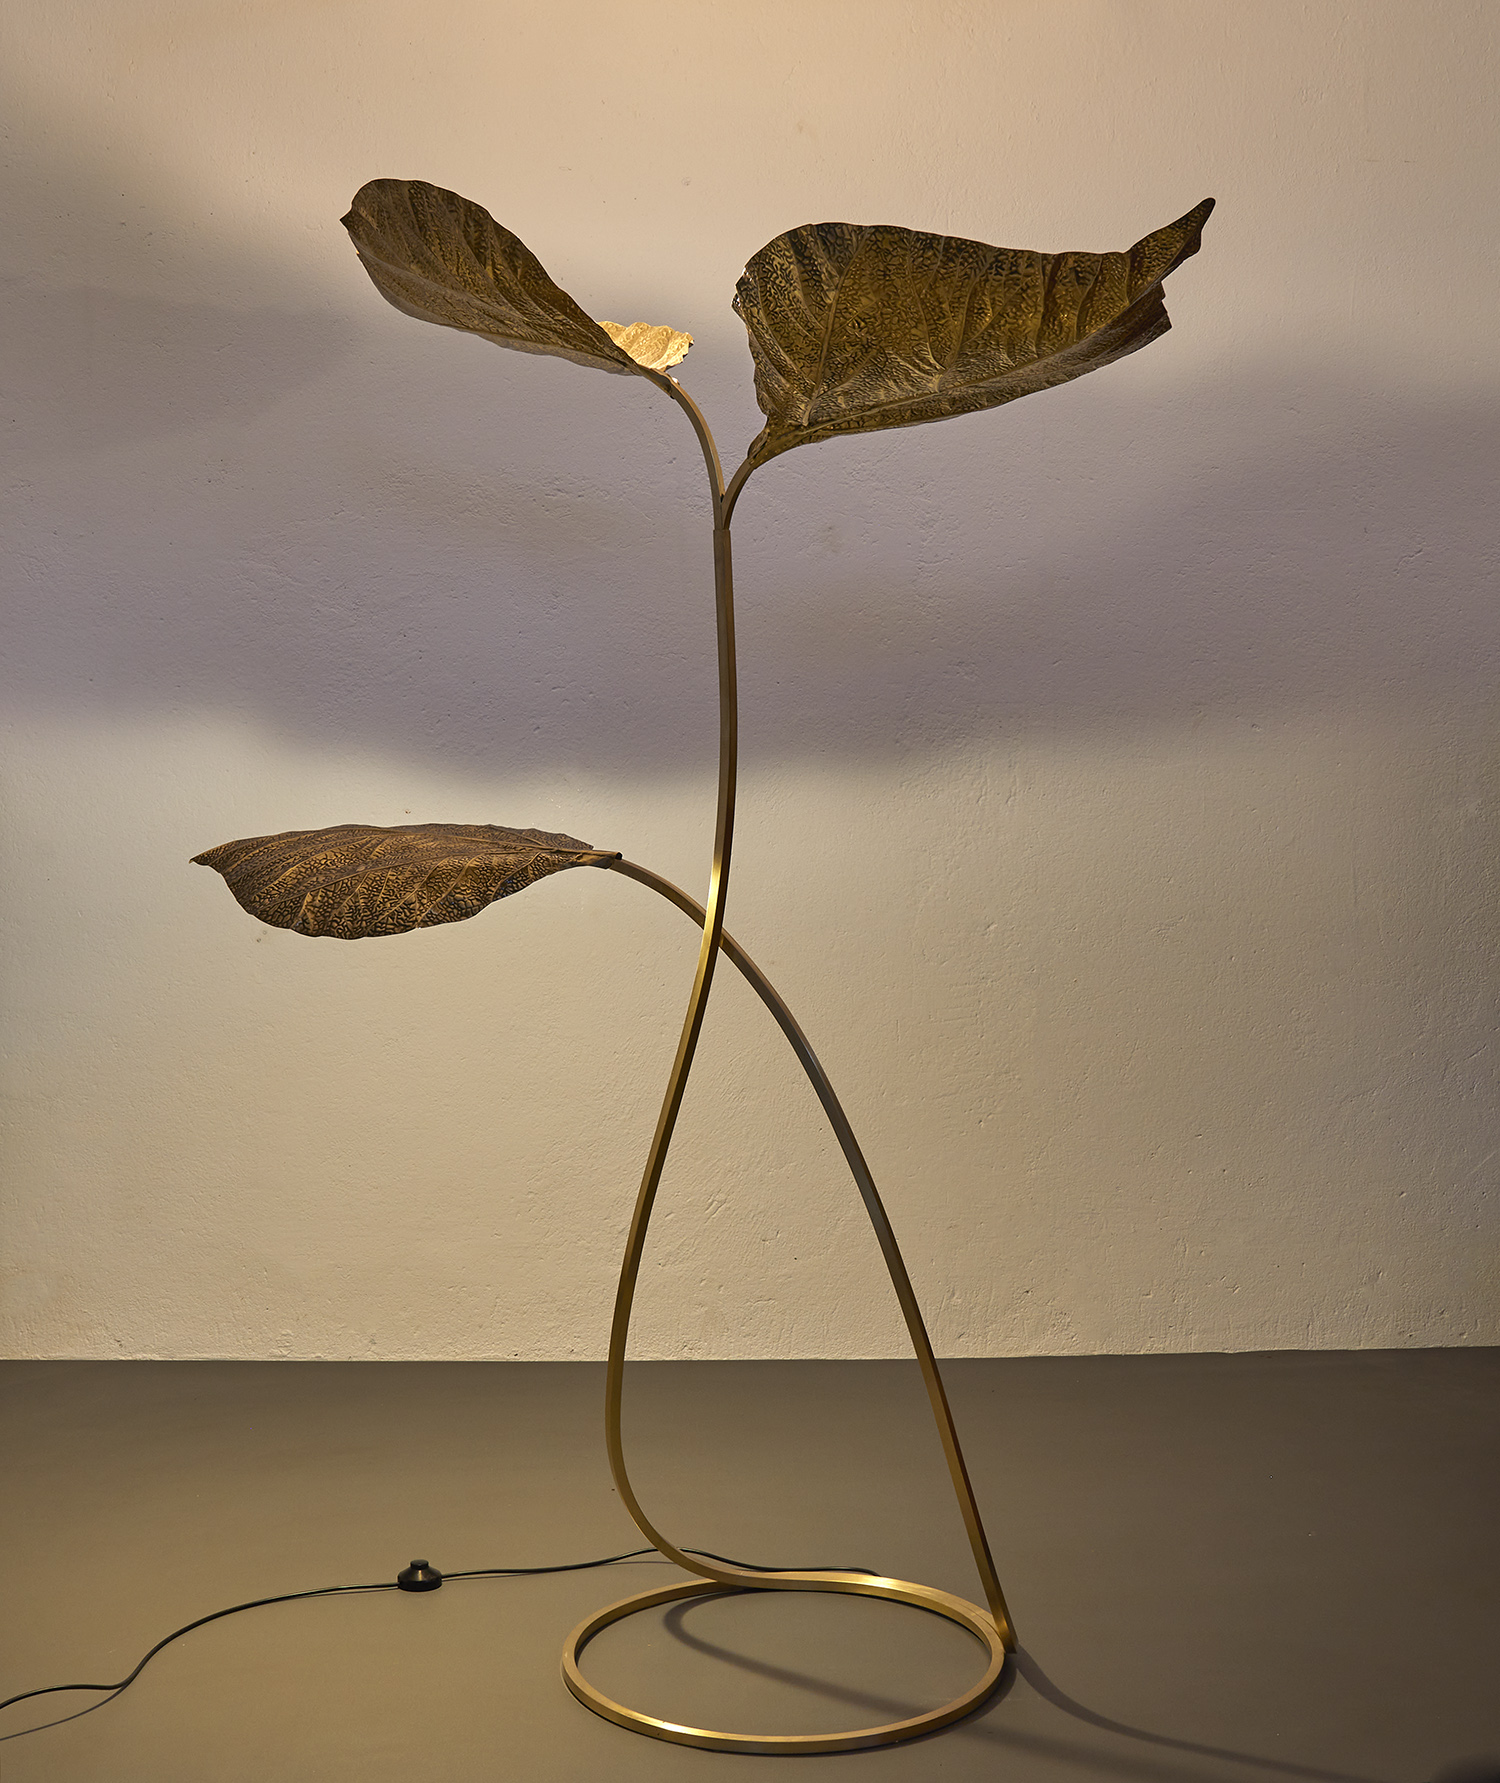 carlo-giorgi-brass-floor-lamp-with-three-leaves-for-bottega-gadda-italy-1970-image-03